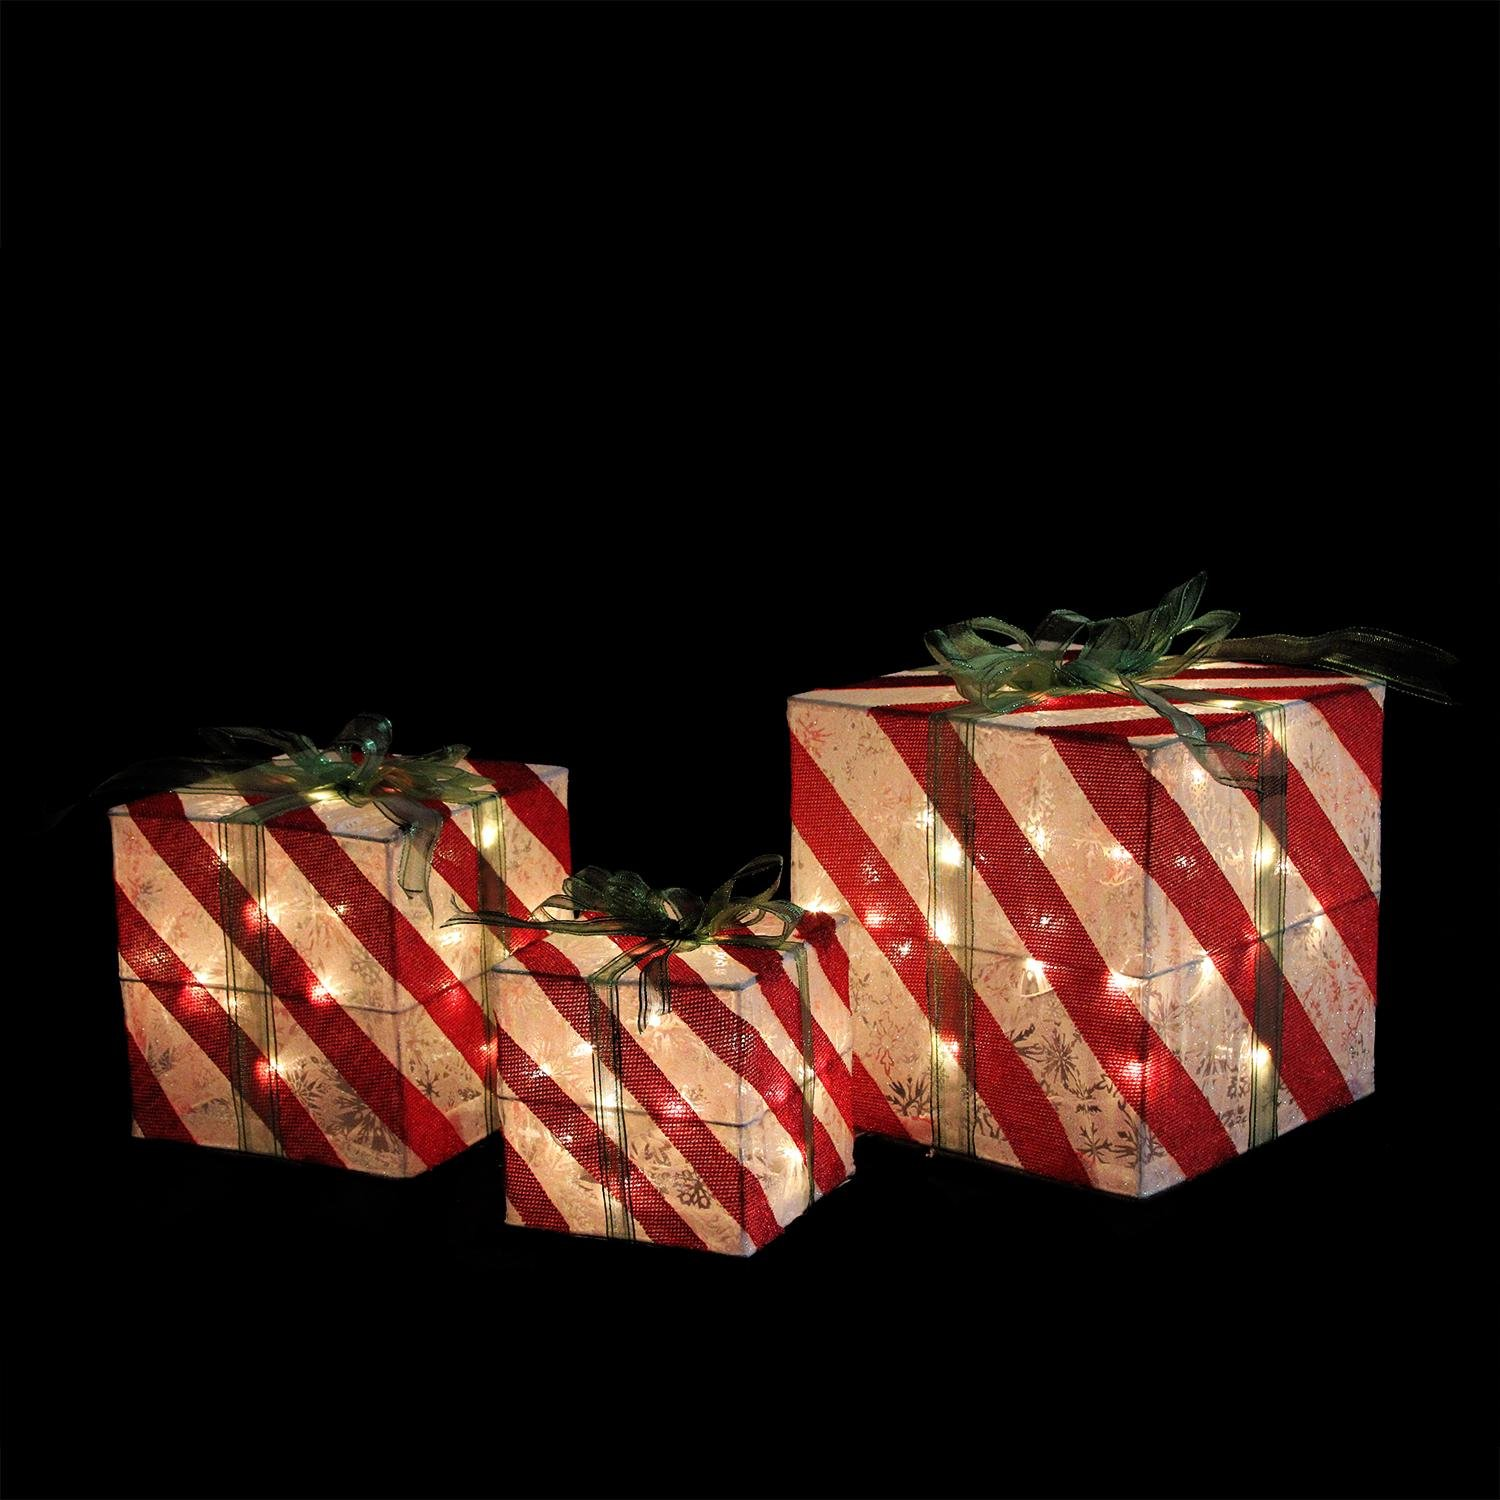 Northlight Set of 3 Lighted Red and White Striped Gift Box Outdoor Christmas Decorations